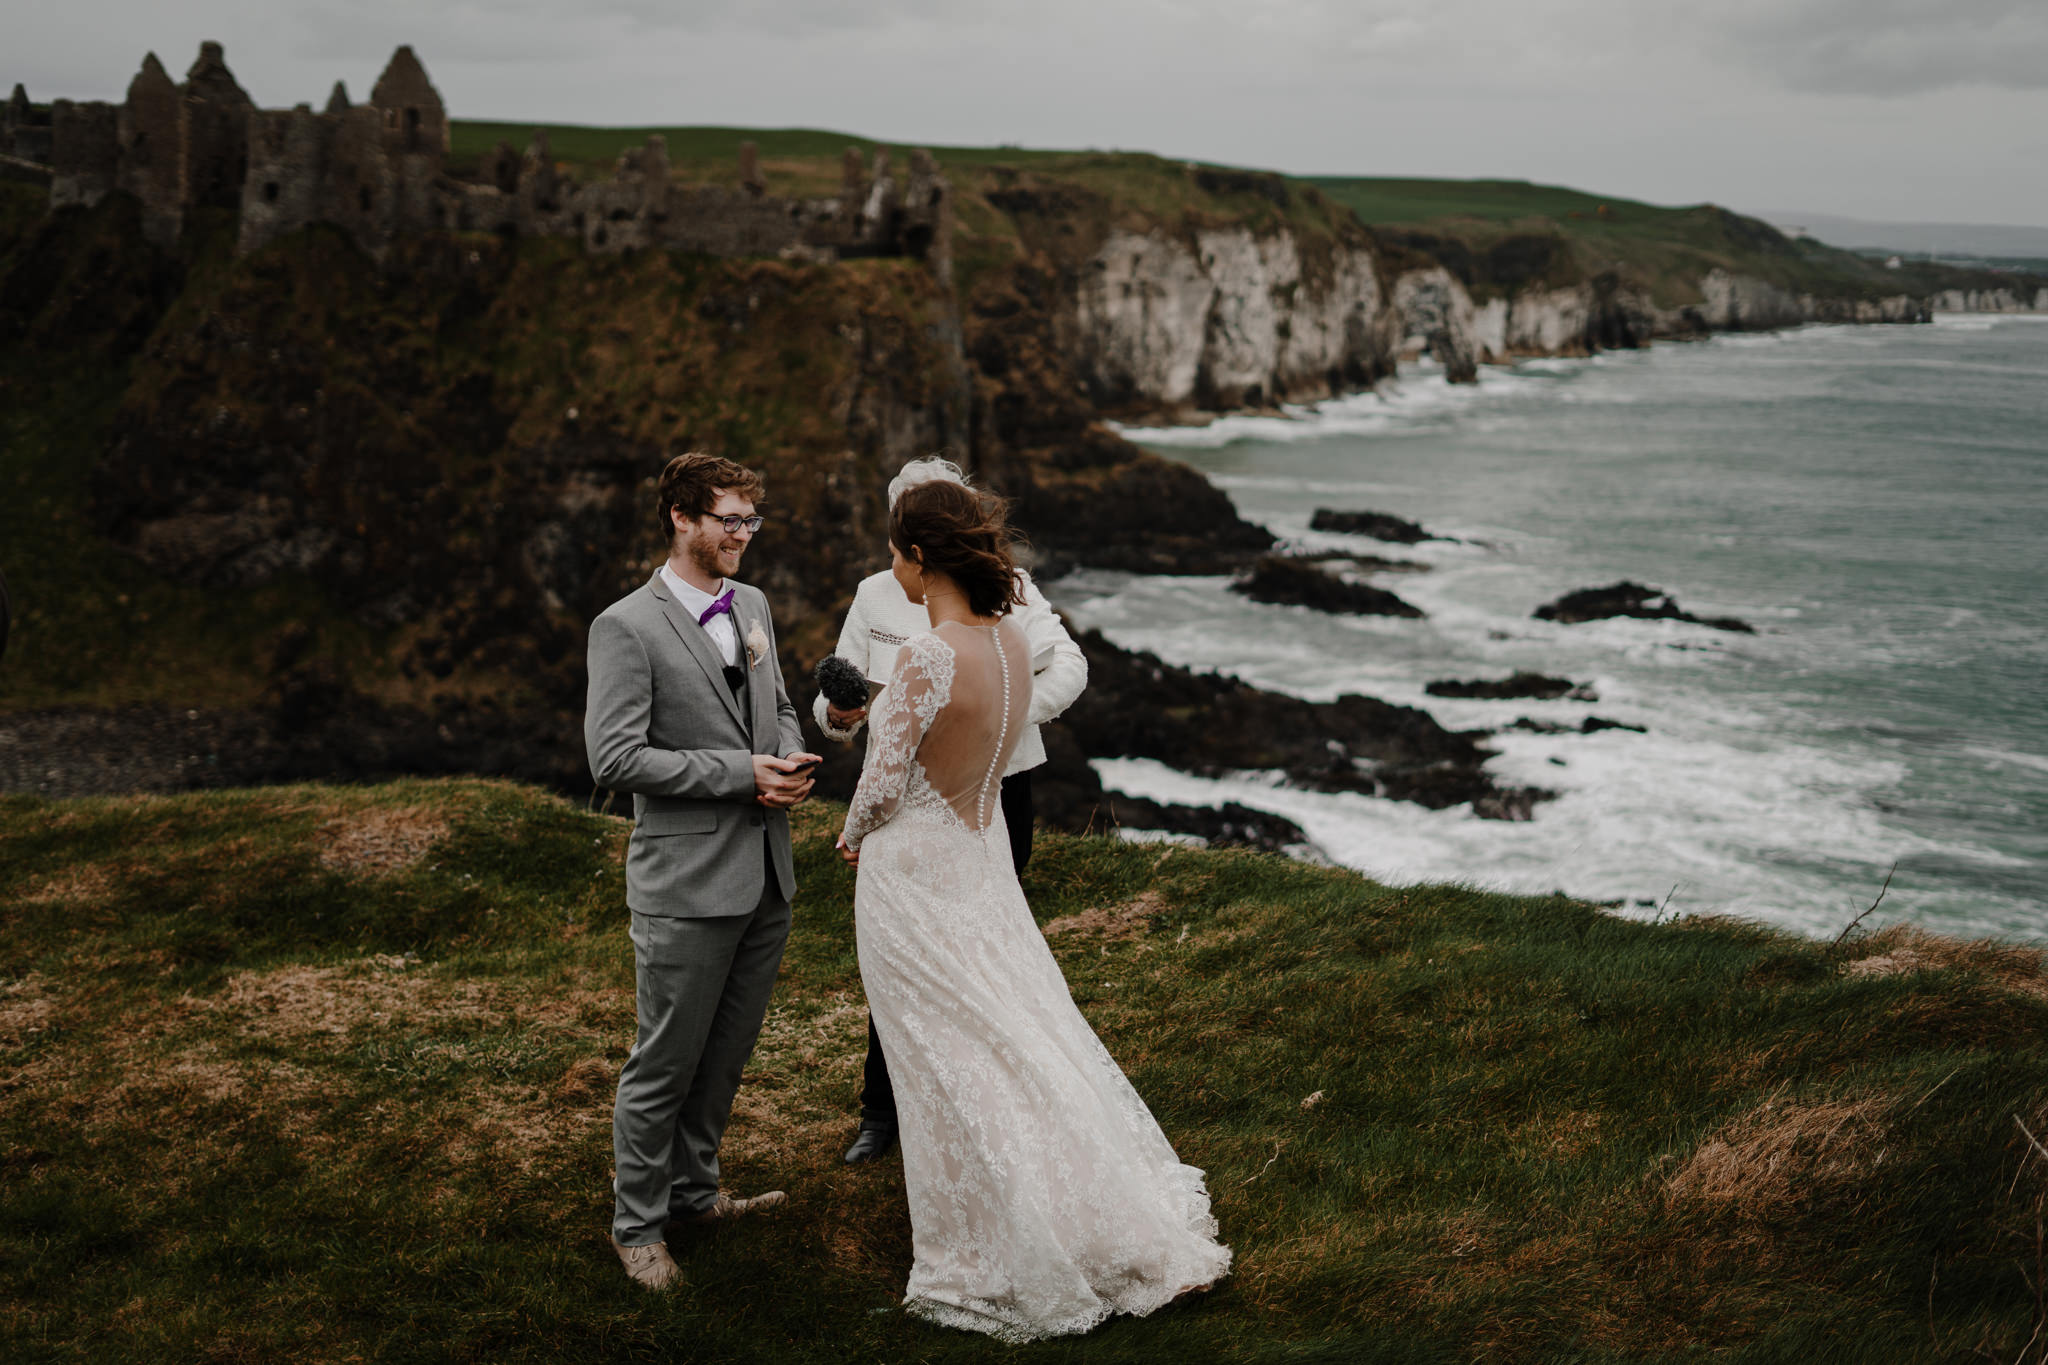 dunluce-castle-giants-causeway-adventure-elopement-M+S-141.jpg